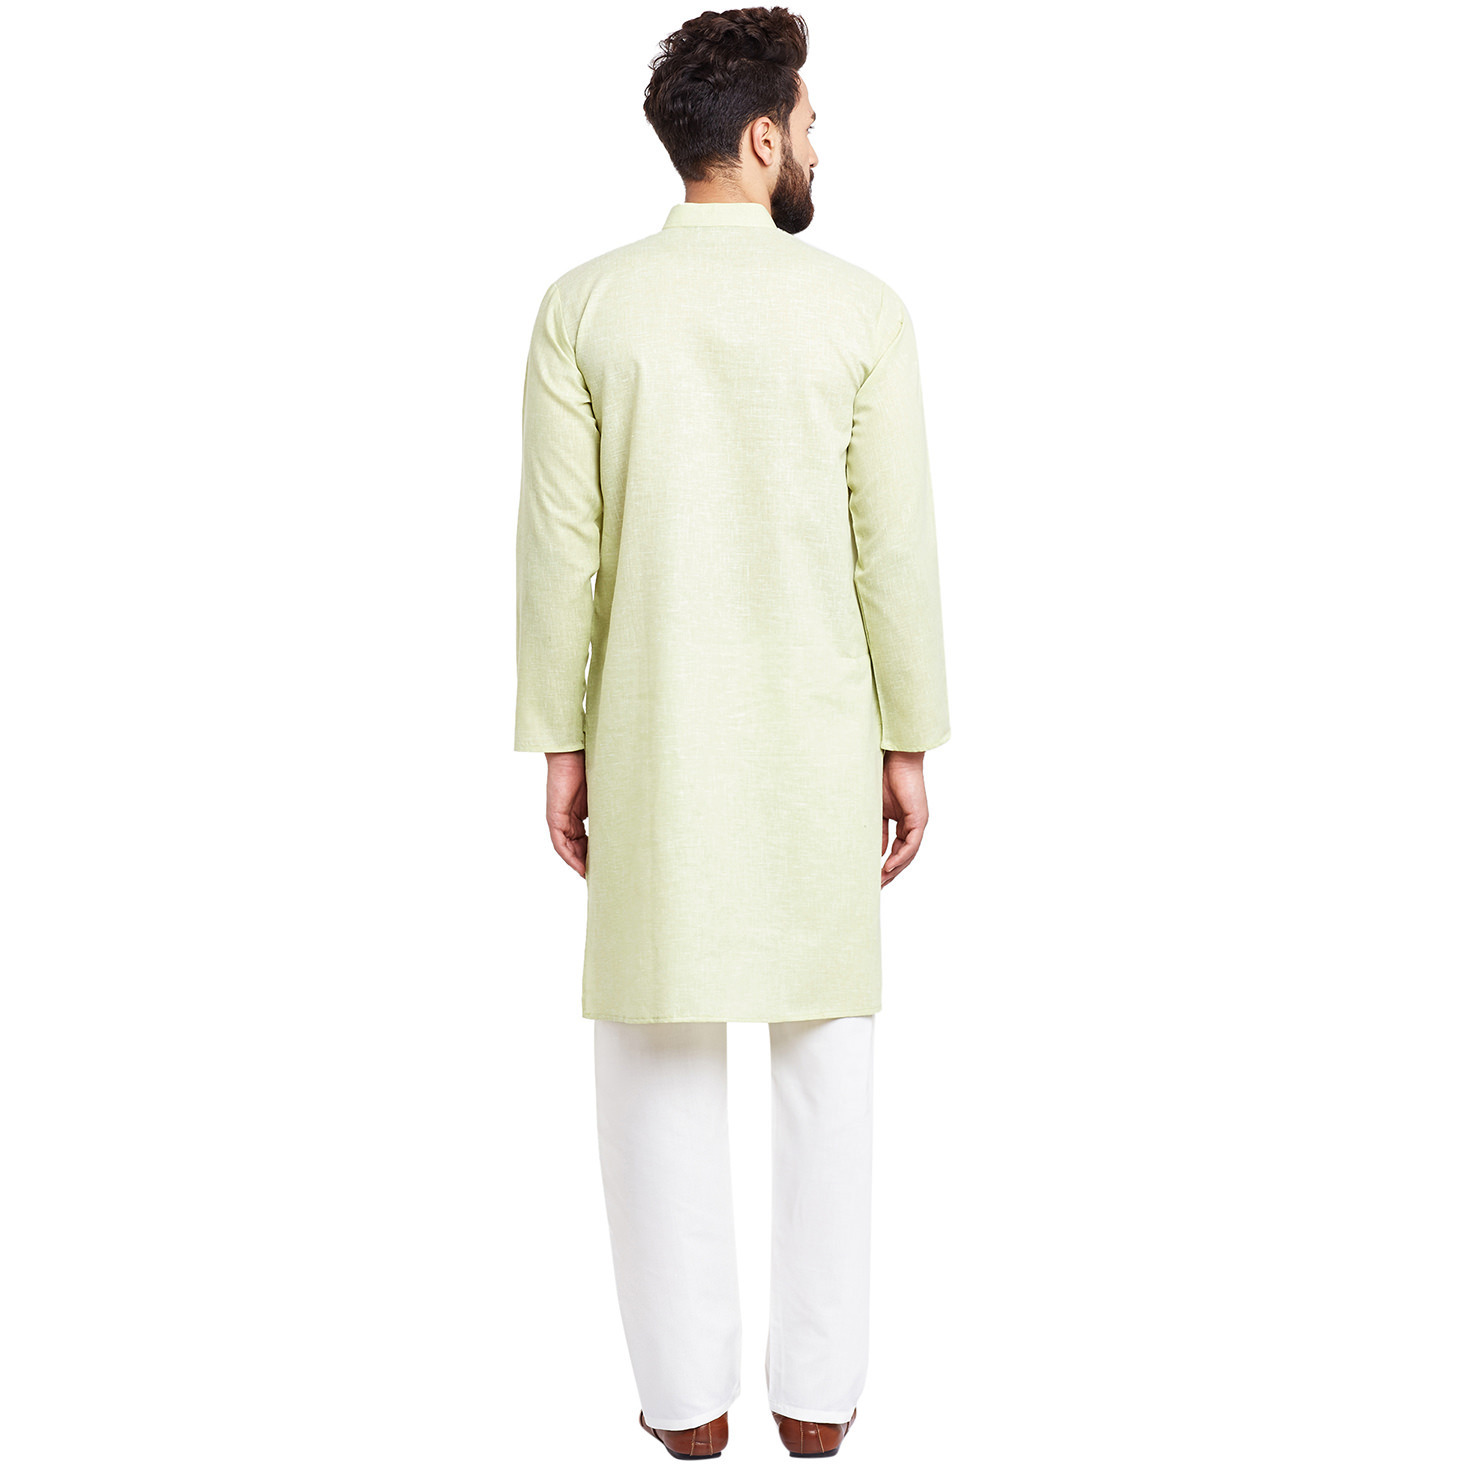 Mens Silk Lime Green Solid Designer Kurta Churidaar Set Long Sleeve Ban collar Regular Fit